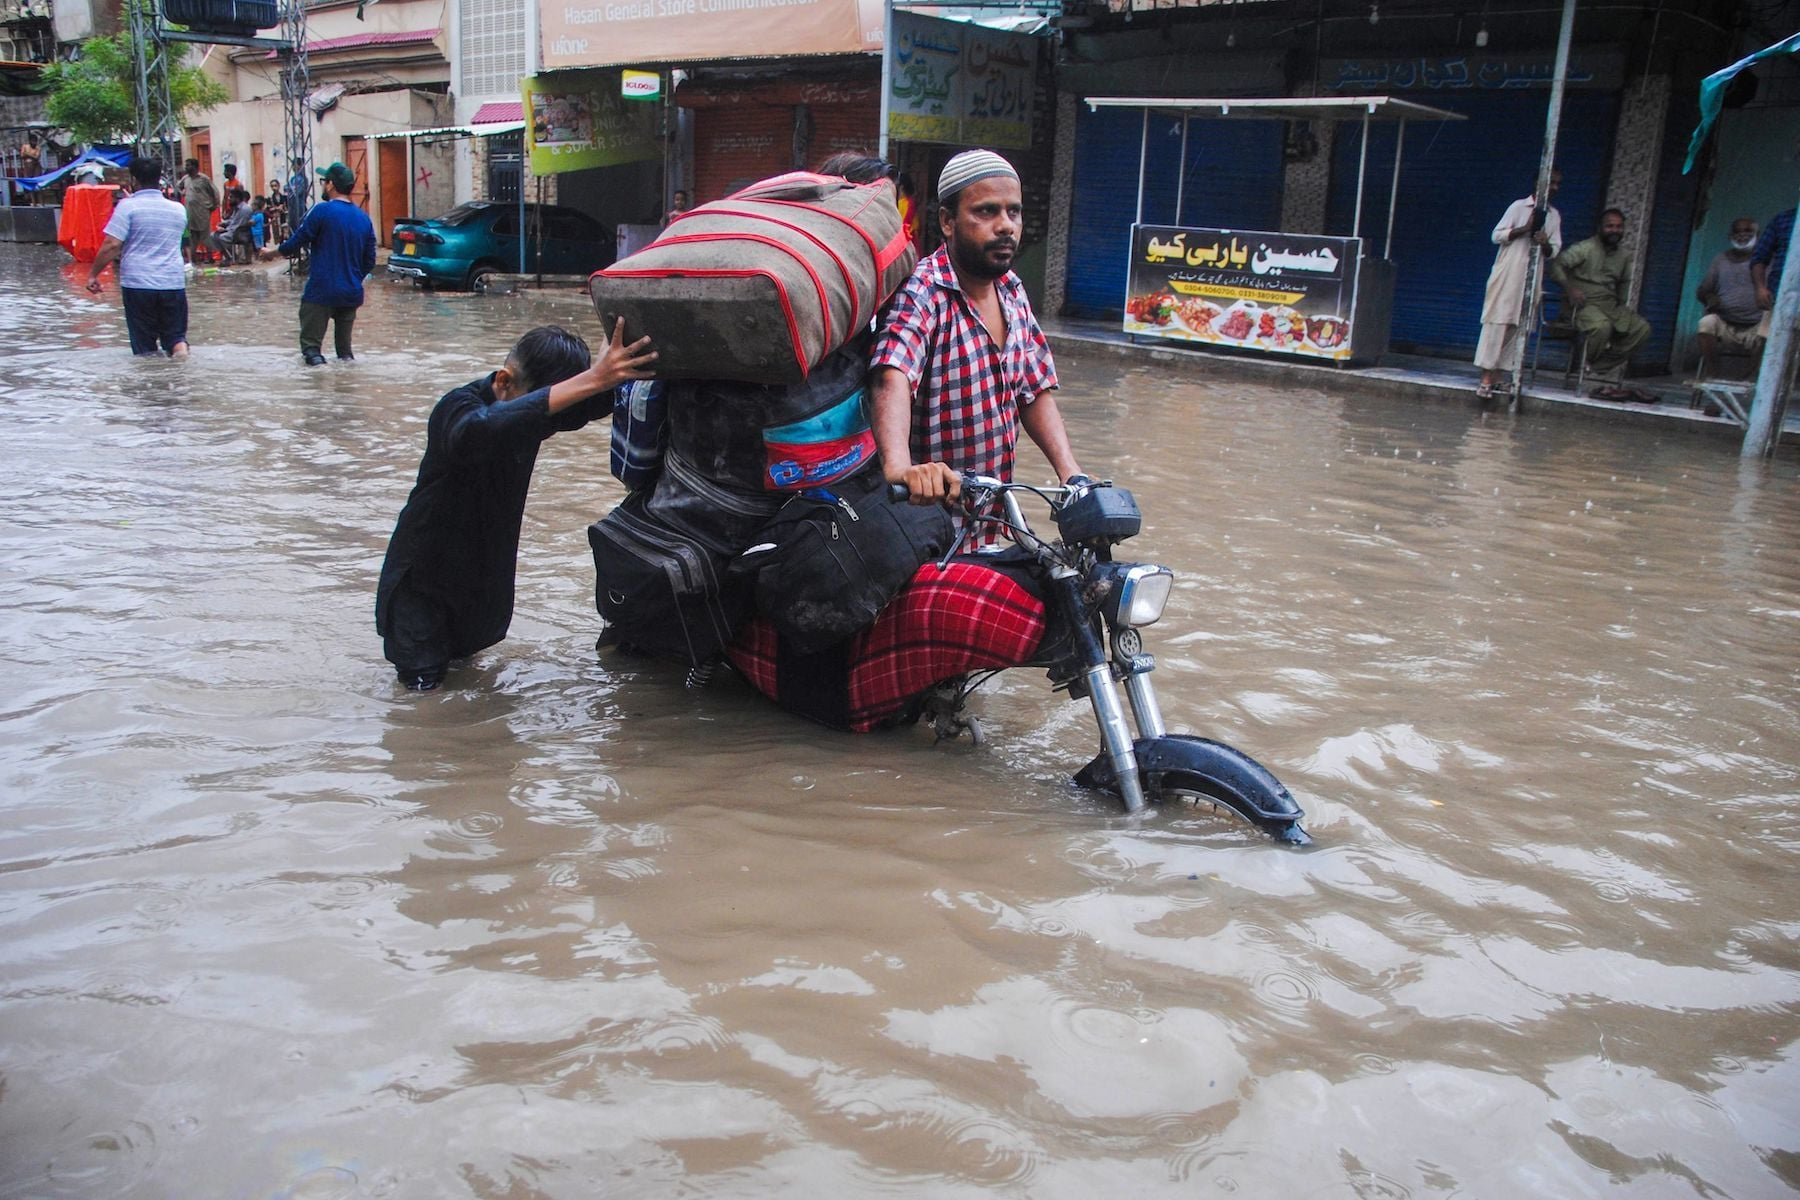 A man pushes a motorcycle transporting bags through a flooded street after heavy monsoon showers in Hyderabad on Tuesday, August 25. — AFP